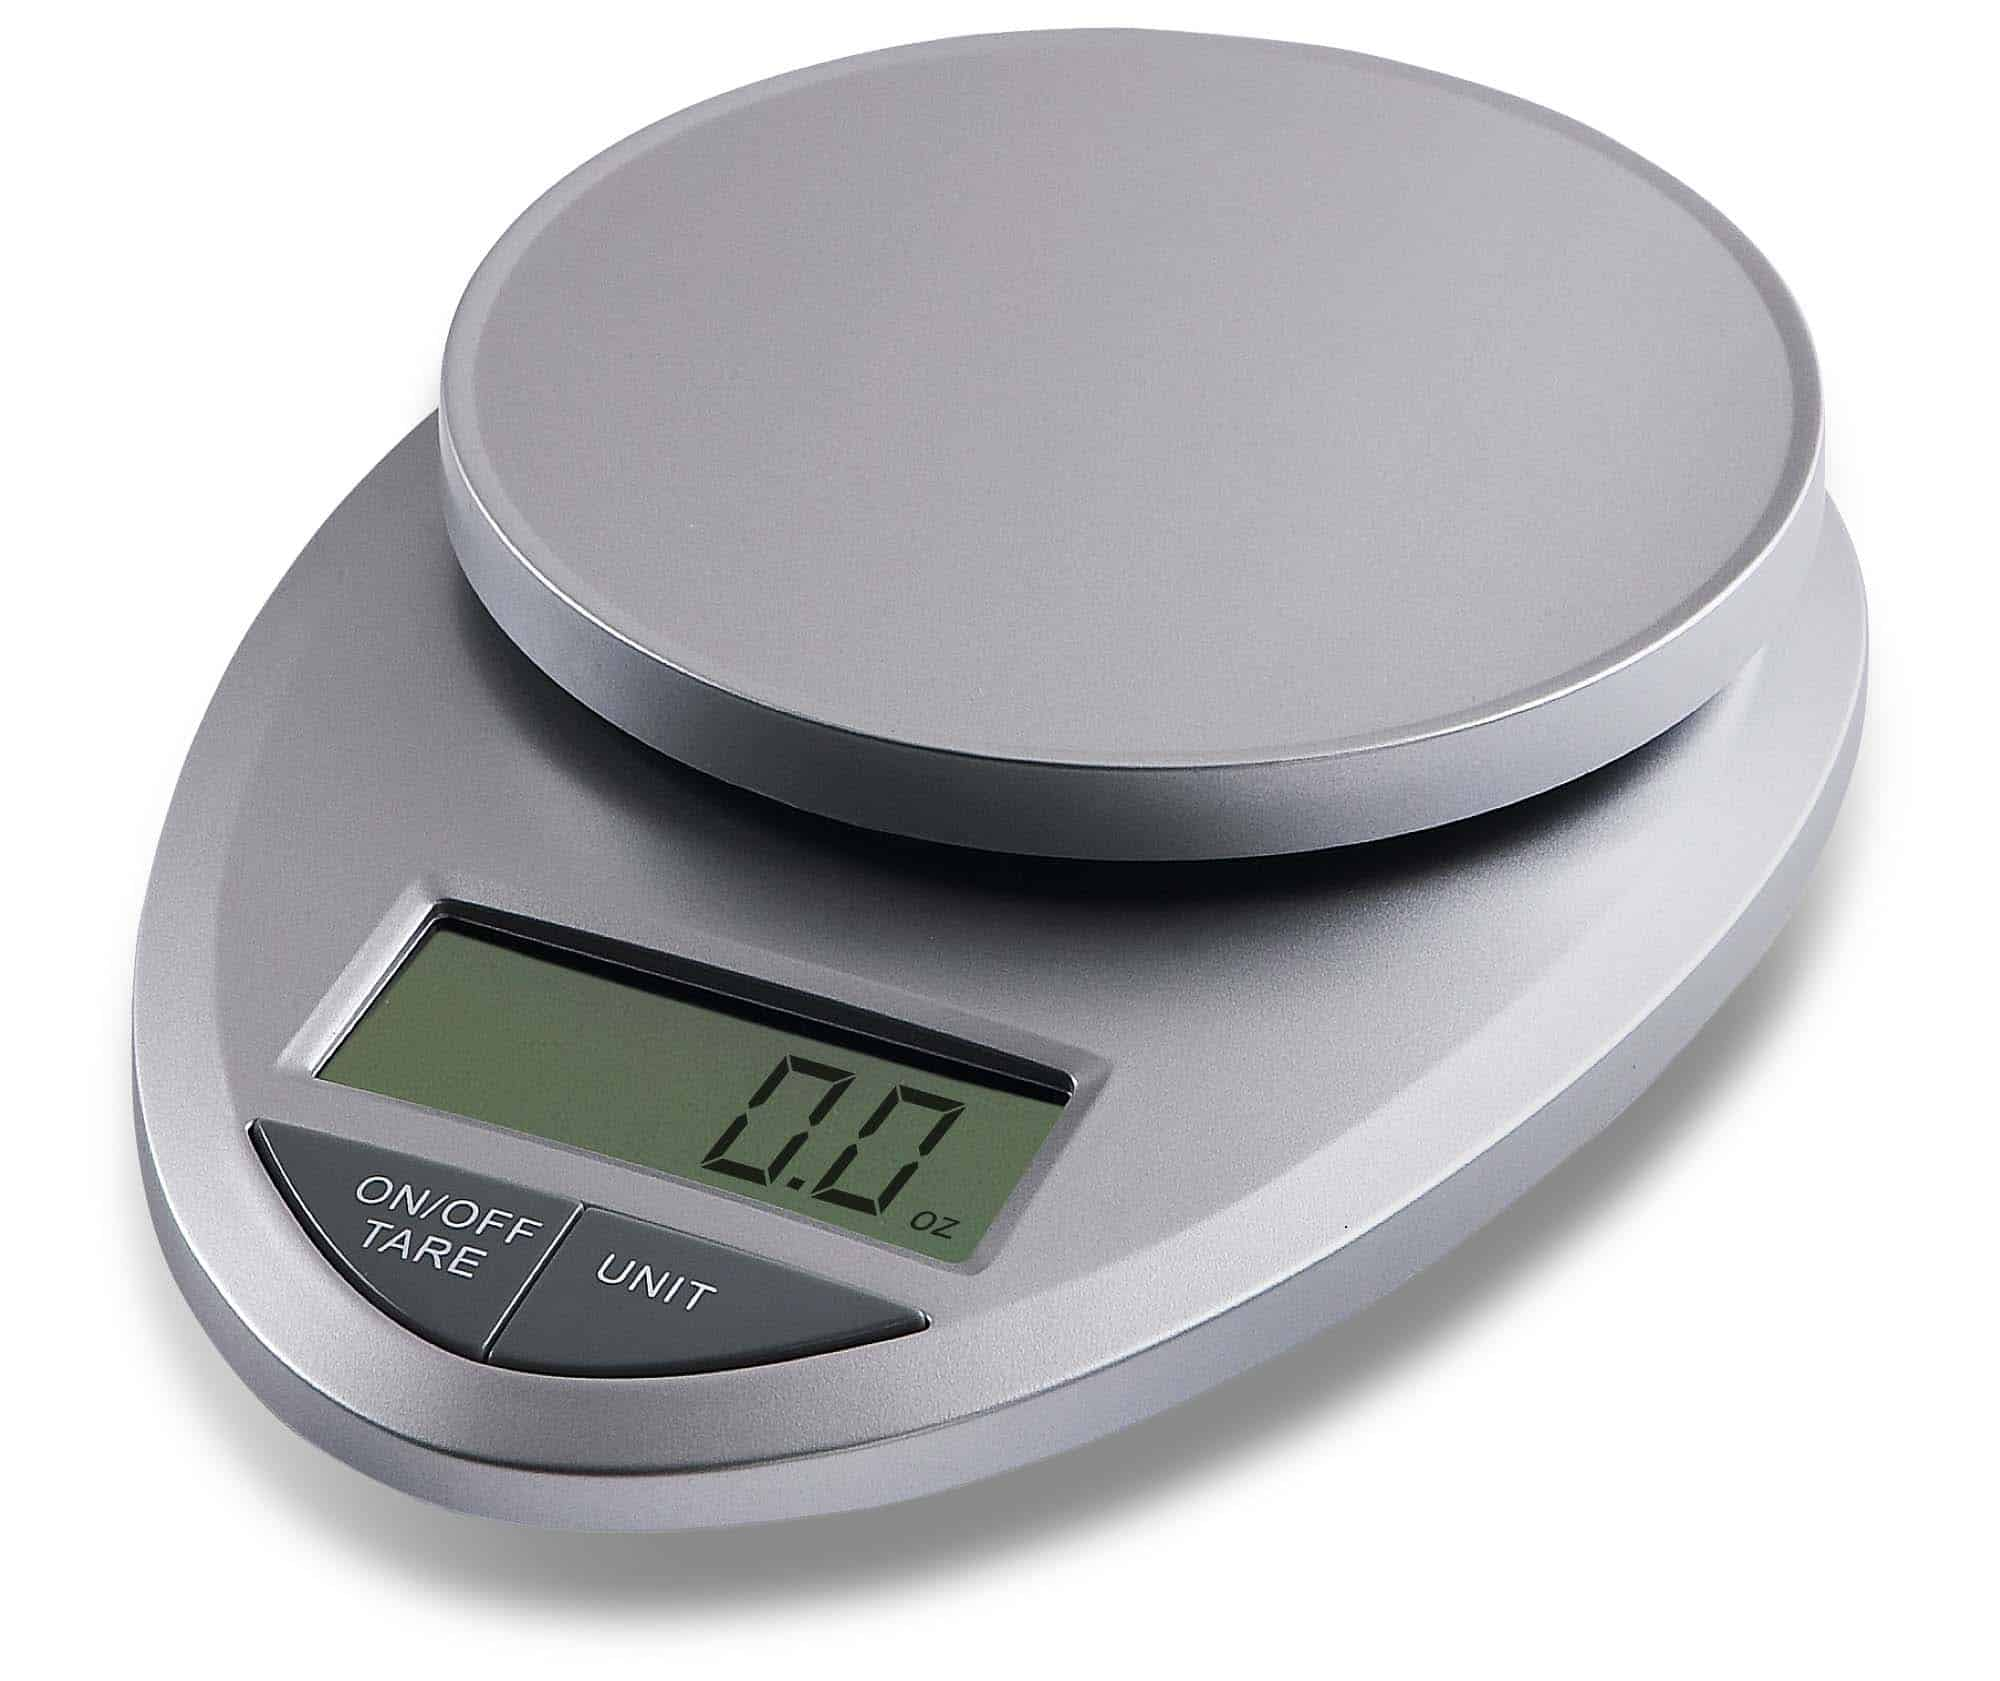 precision pro scale review